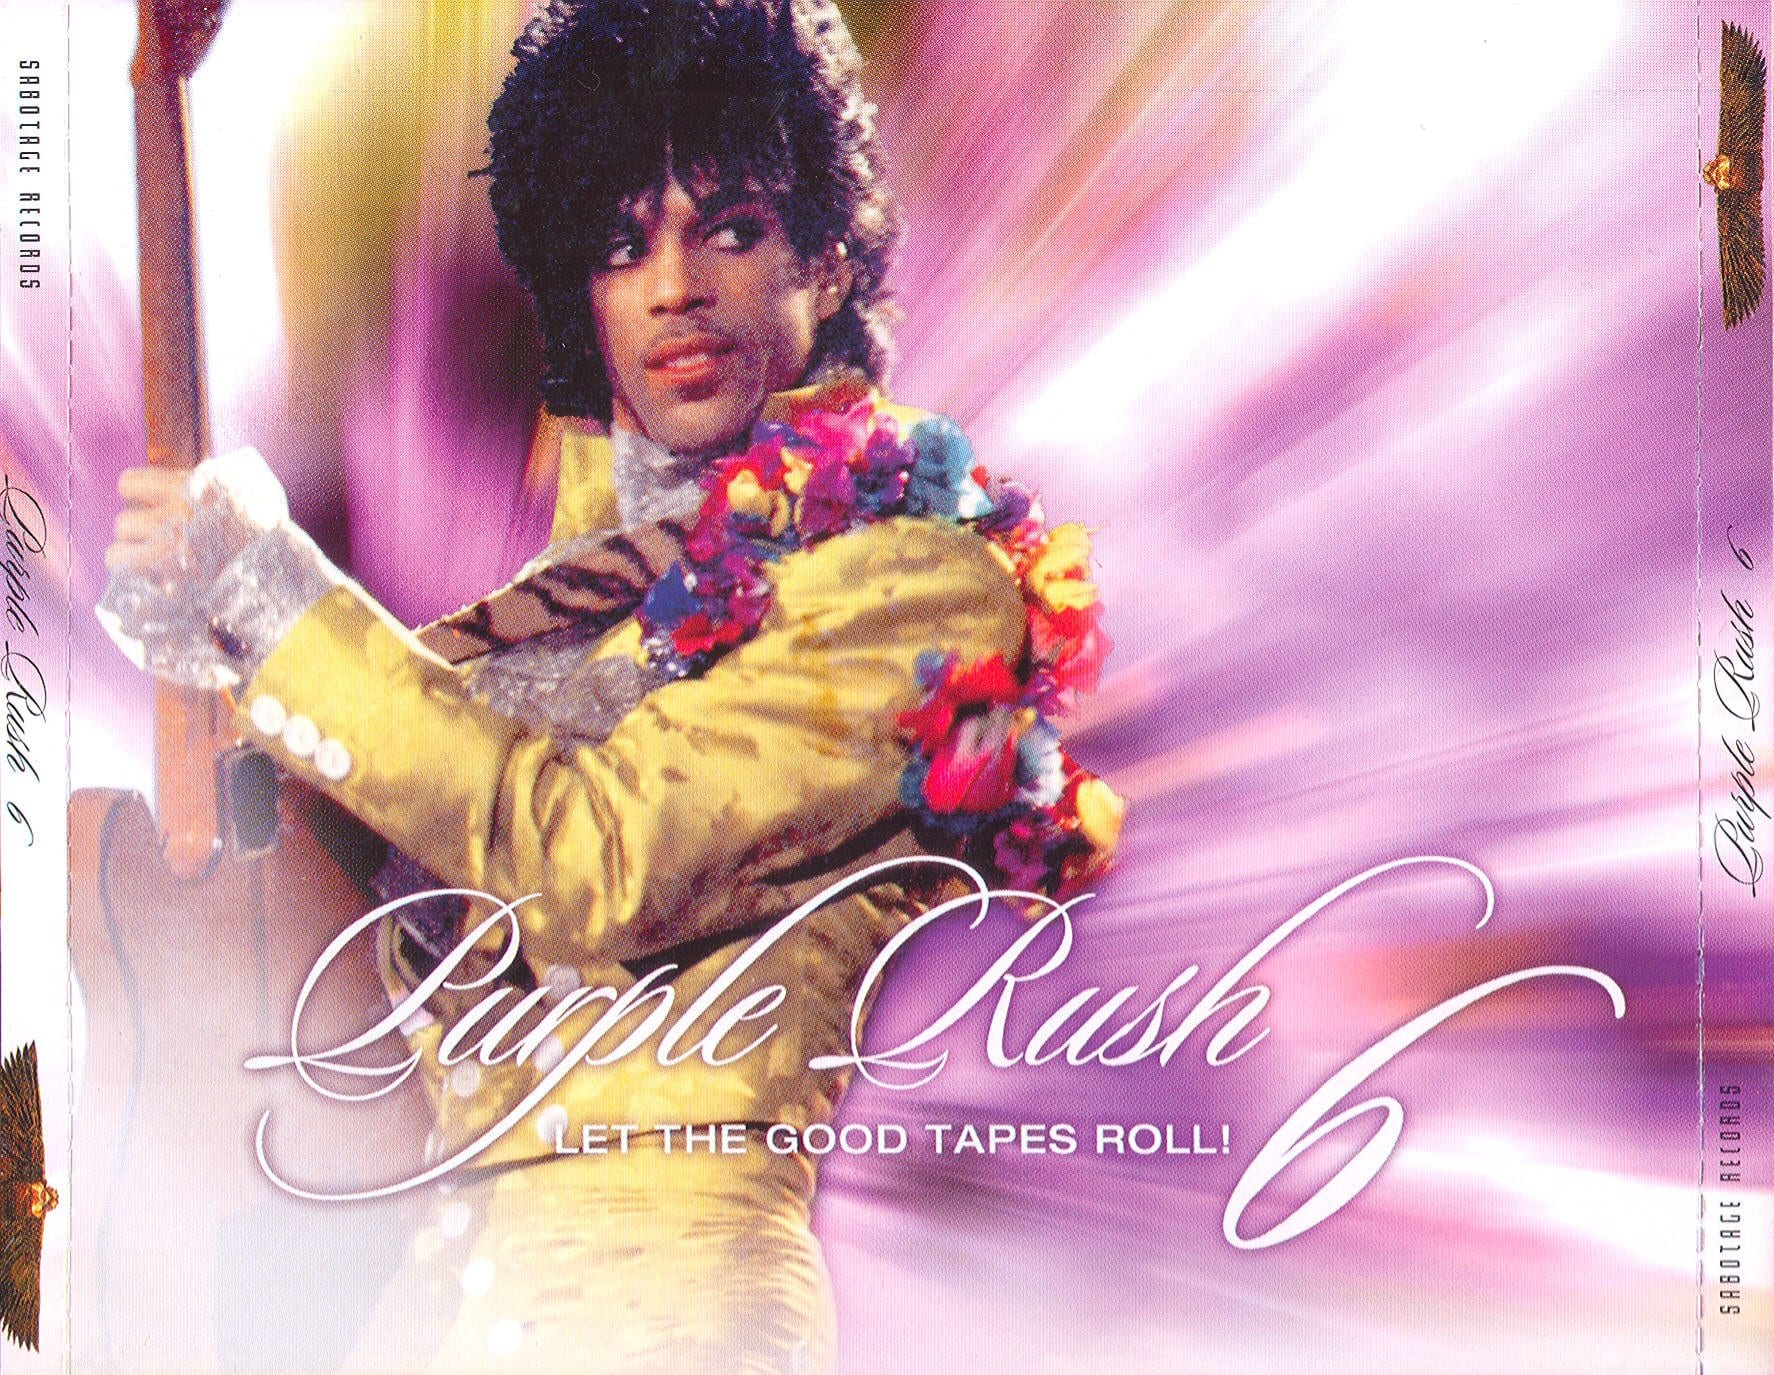 Prince And The Revolution - Purple Rush: Rehearsals & Live Shows 1983-85 (2002) 6 CD SET 10